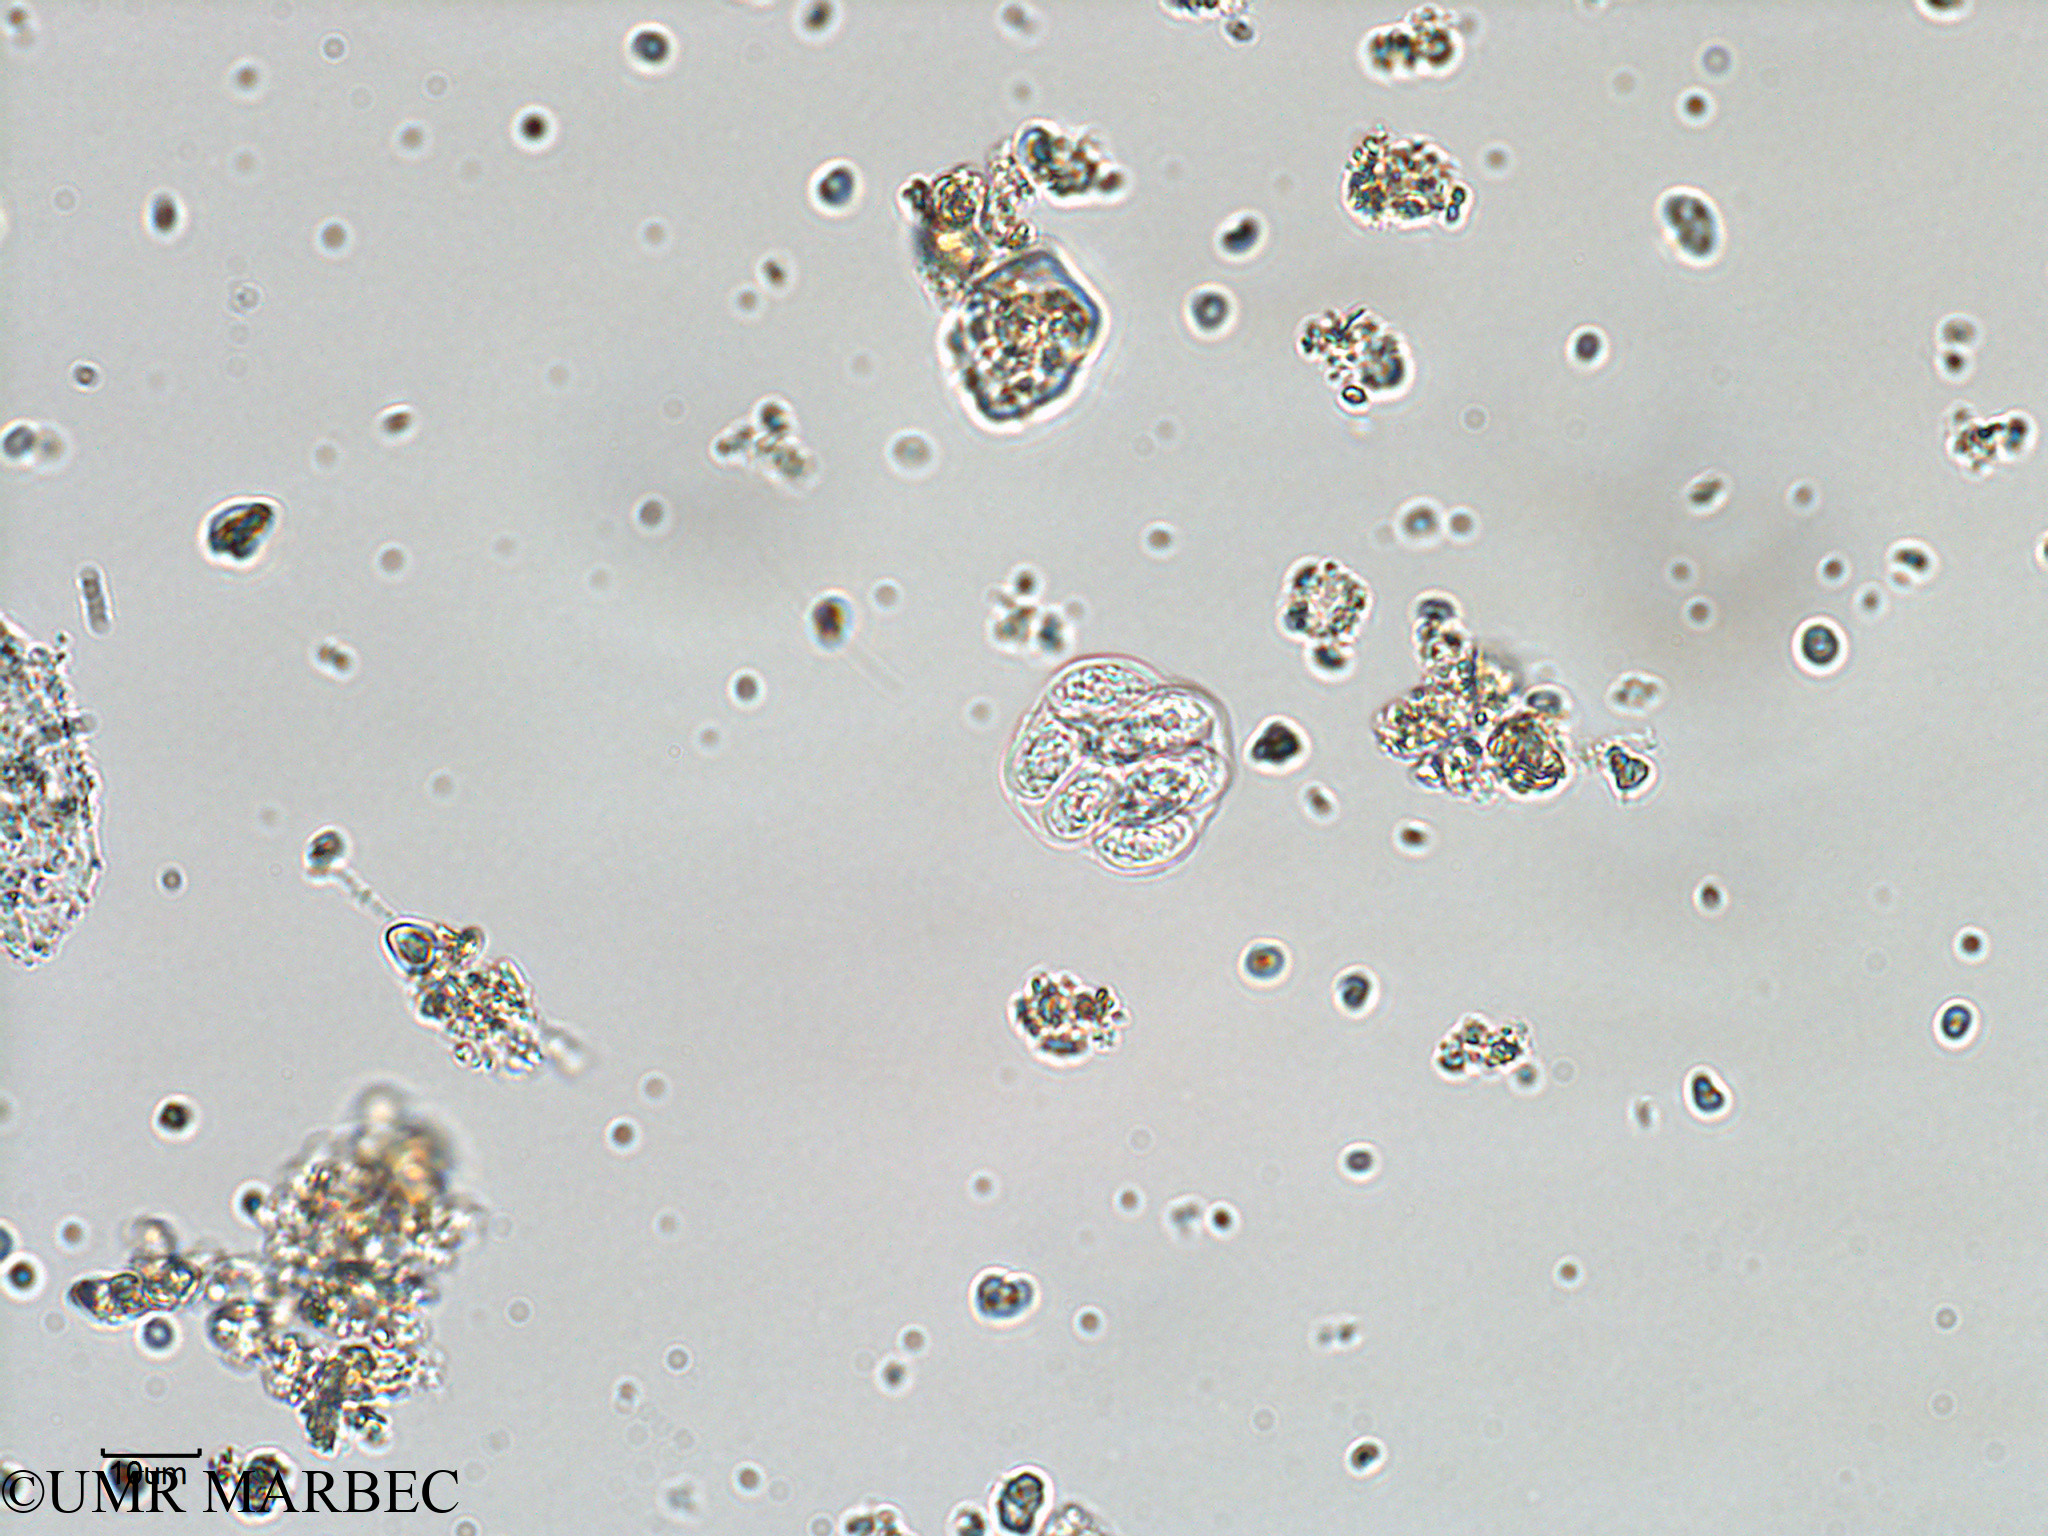 phyto/Bizerte/bizerte_bay/RISCO February 2015/Oocystis sp (ancien Baie_T1-A_oocystis-14).tif(copy).jpg